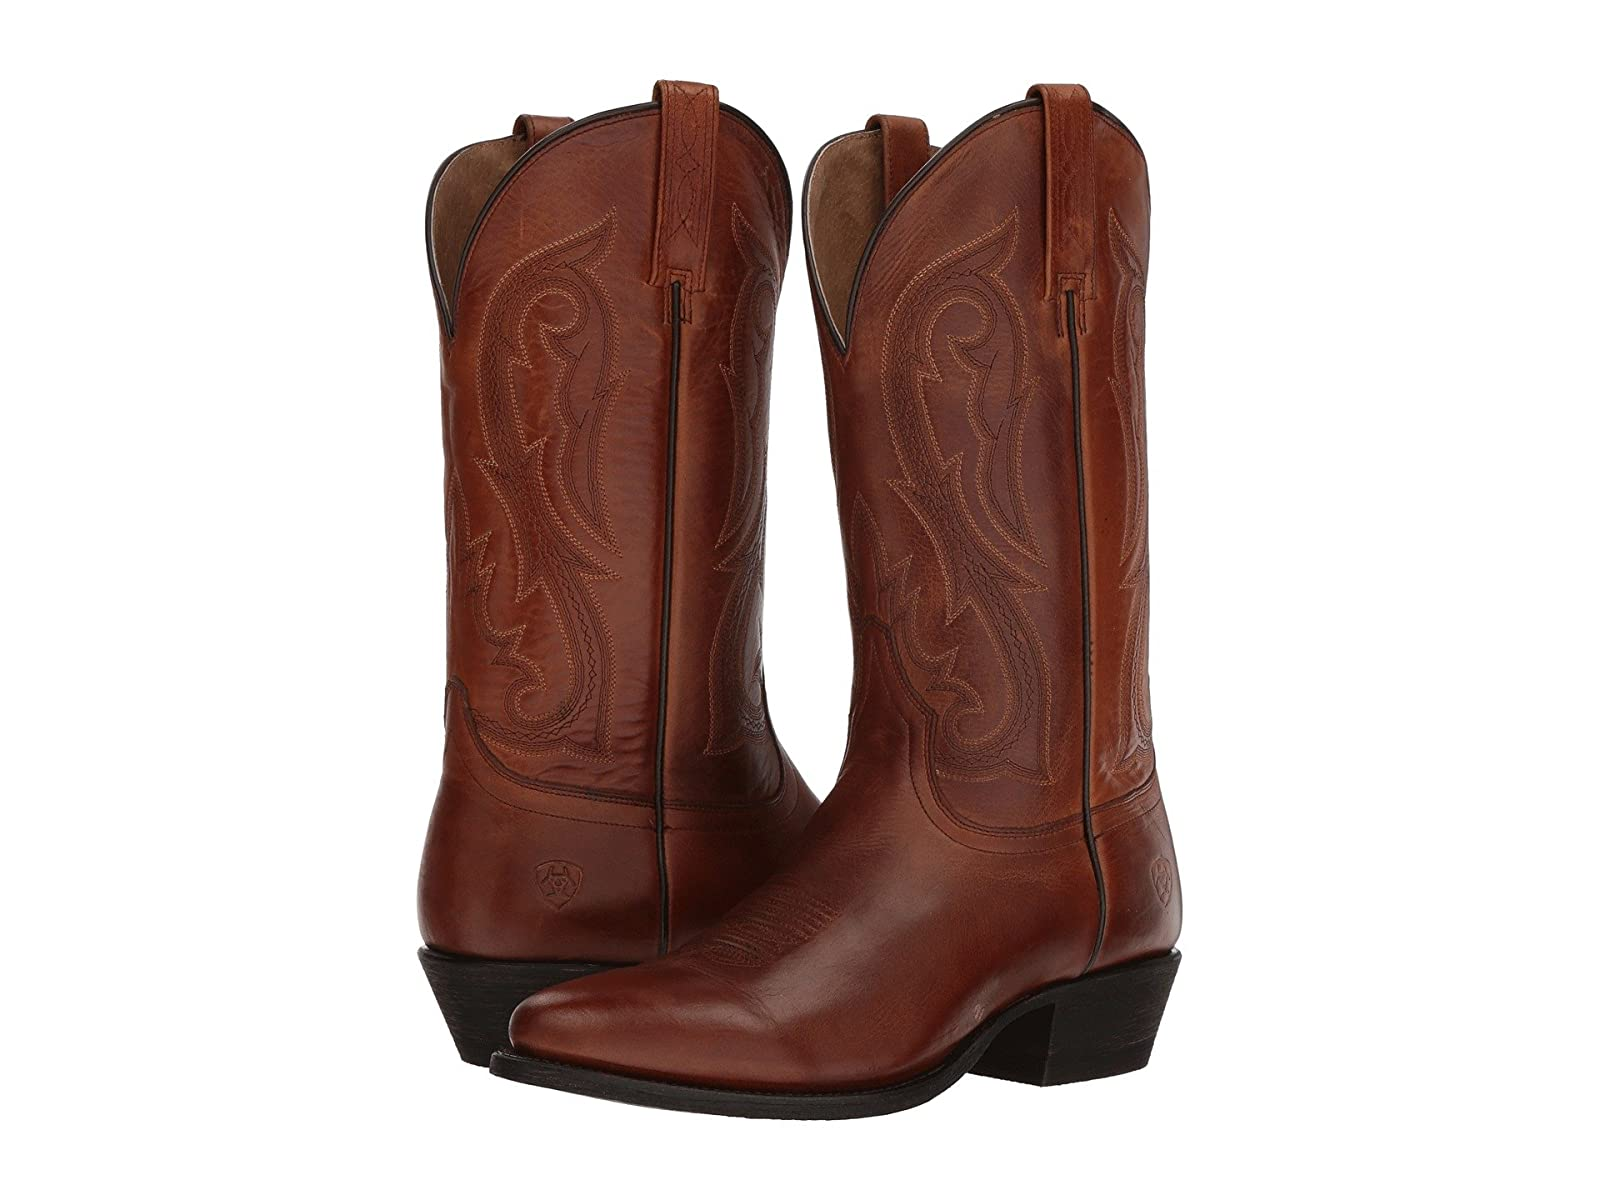 Ariat Circuit Round ToeSelling fashionable and eye-catching shoes